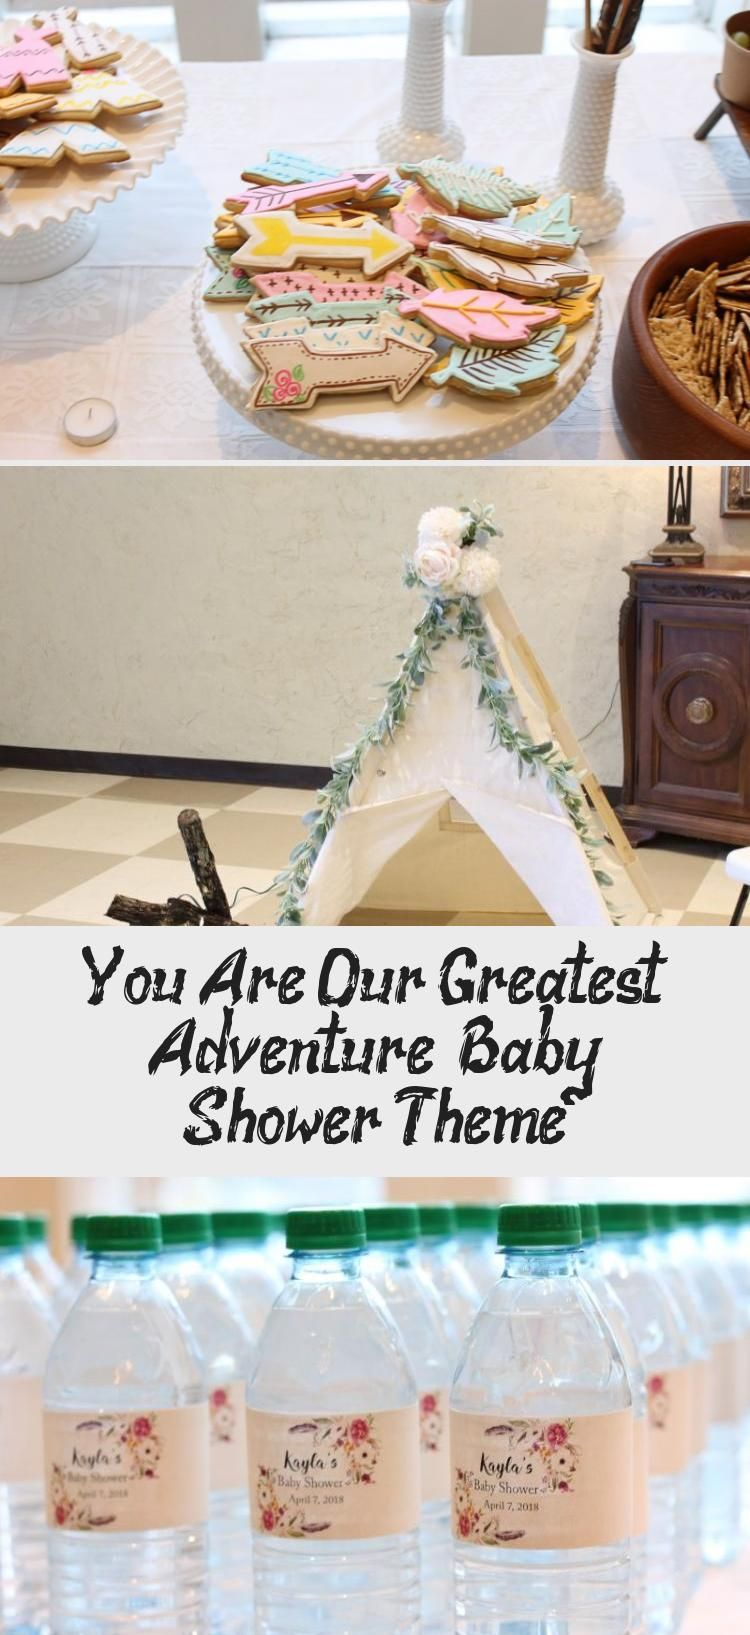 You Are Our Greatest Adventure – Baby Shower Theme